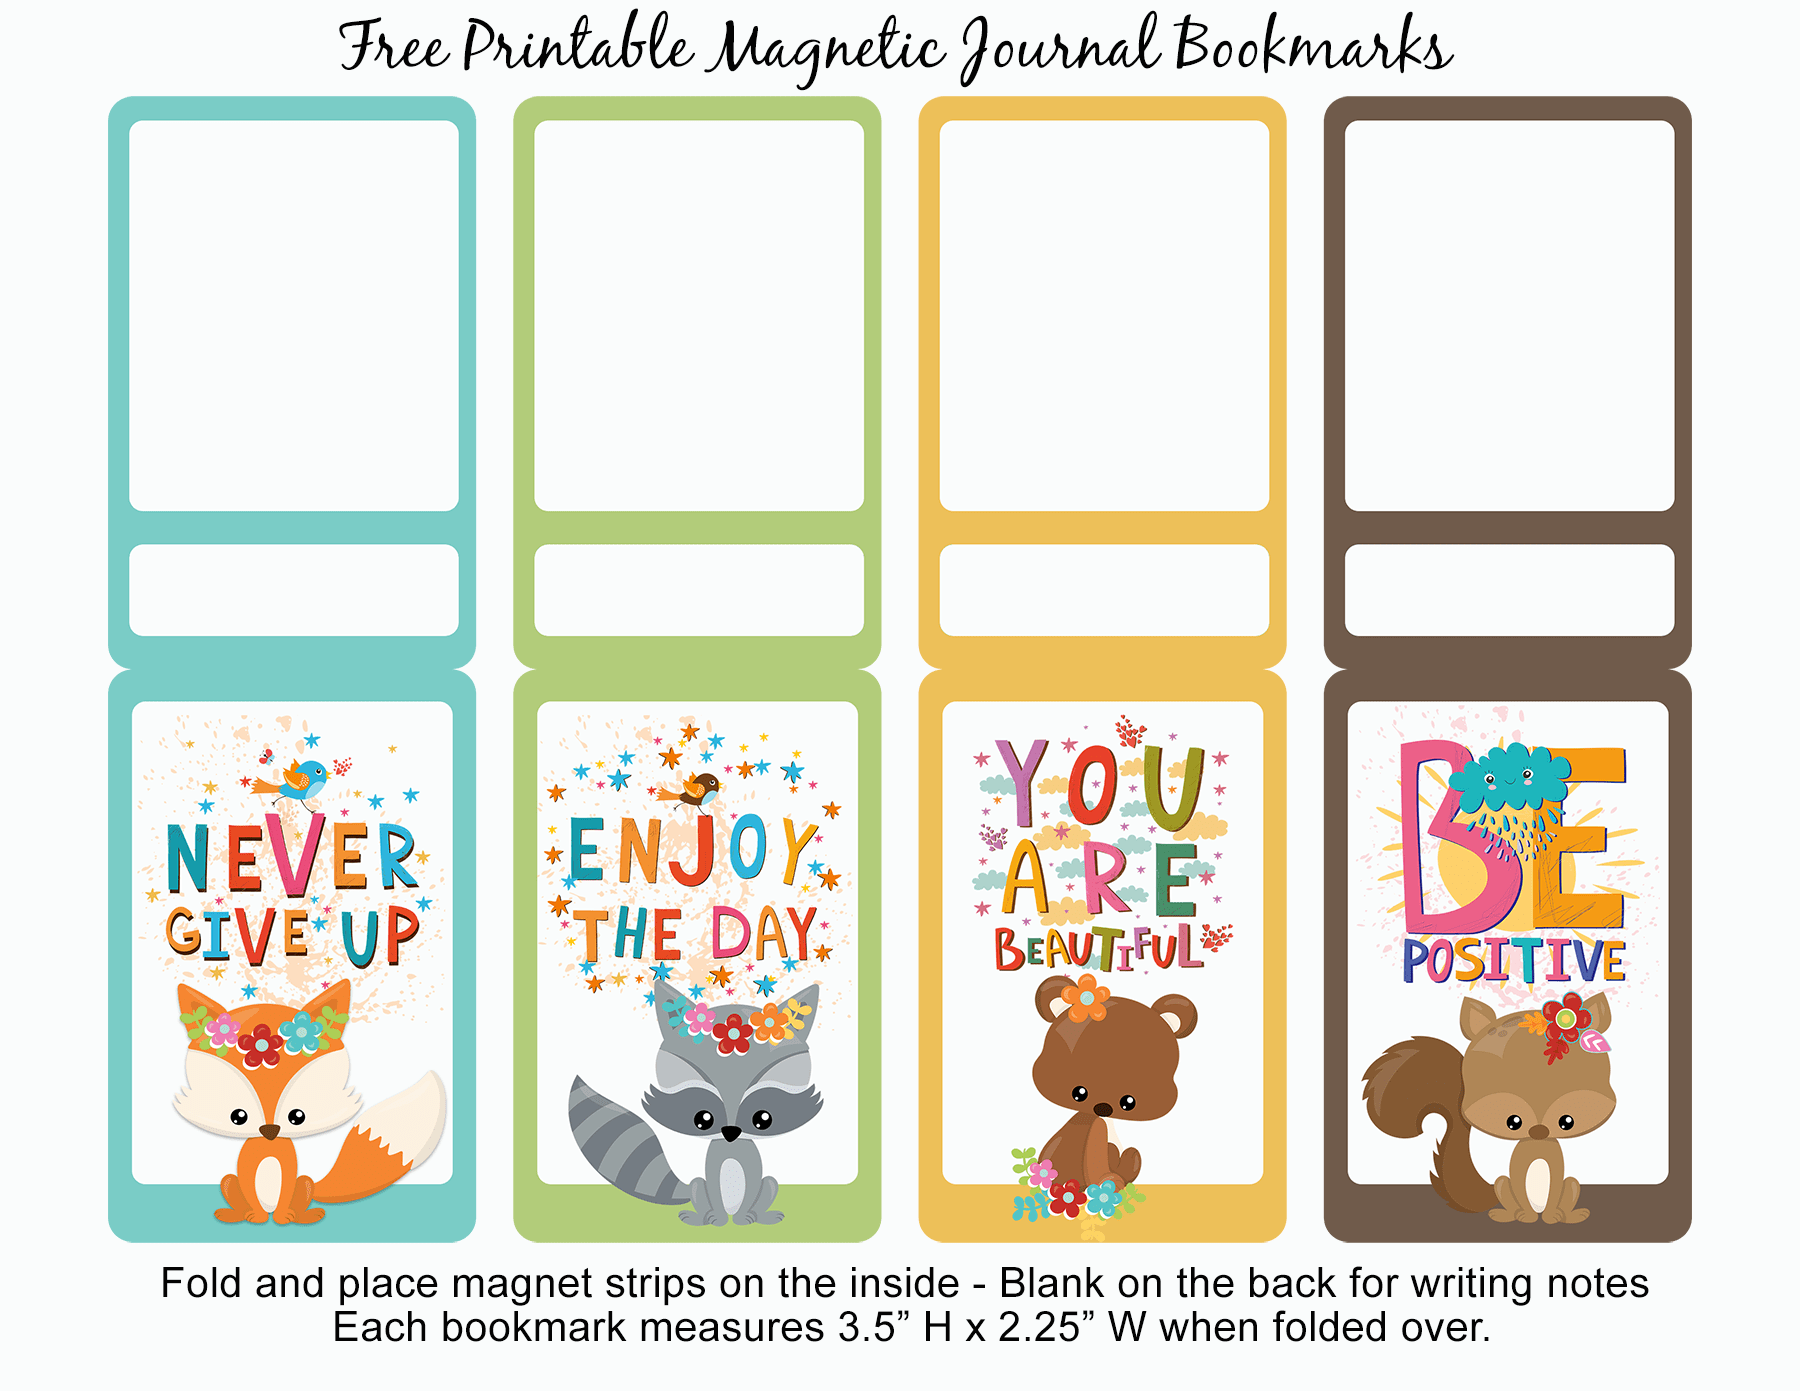 photo relating to Printable Magnet identified as Free of charge Printable Magnetic Magazine Bookmarks Inspirational Estimates